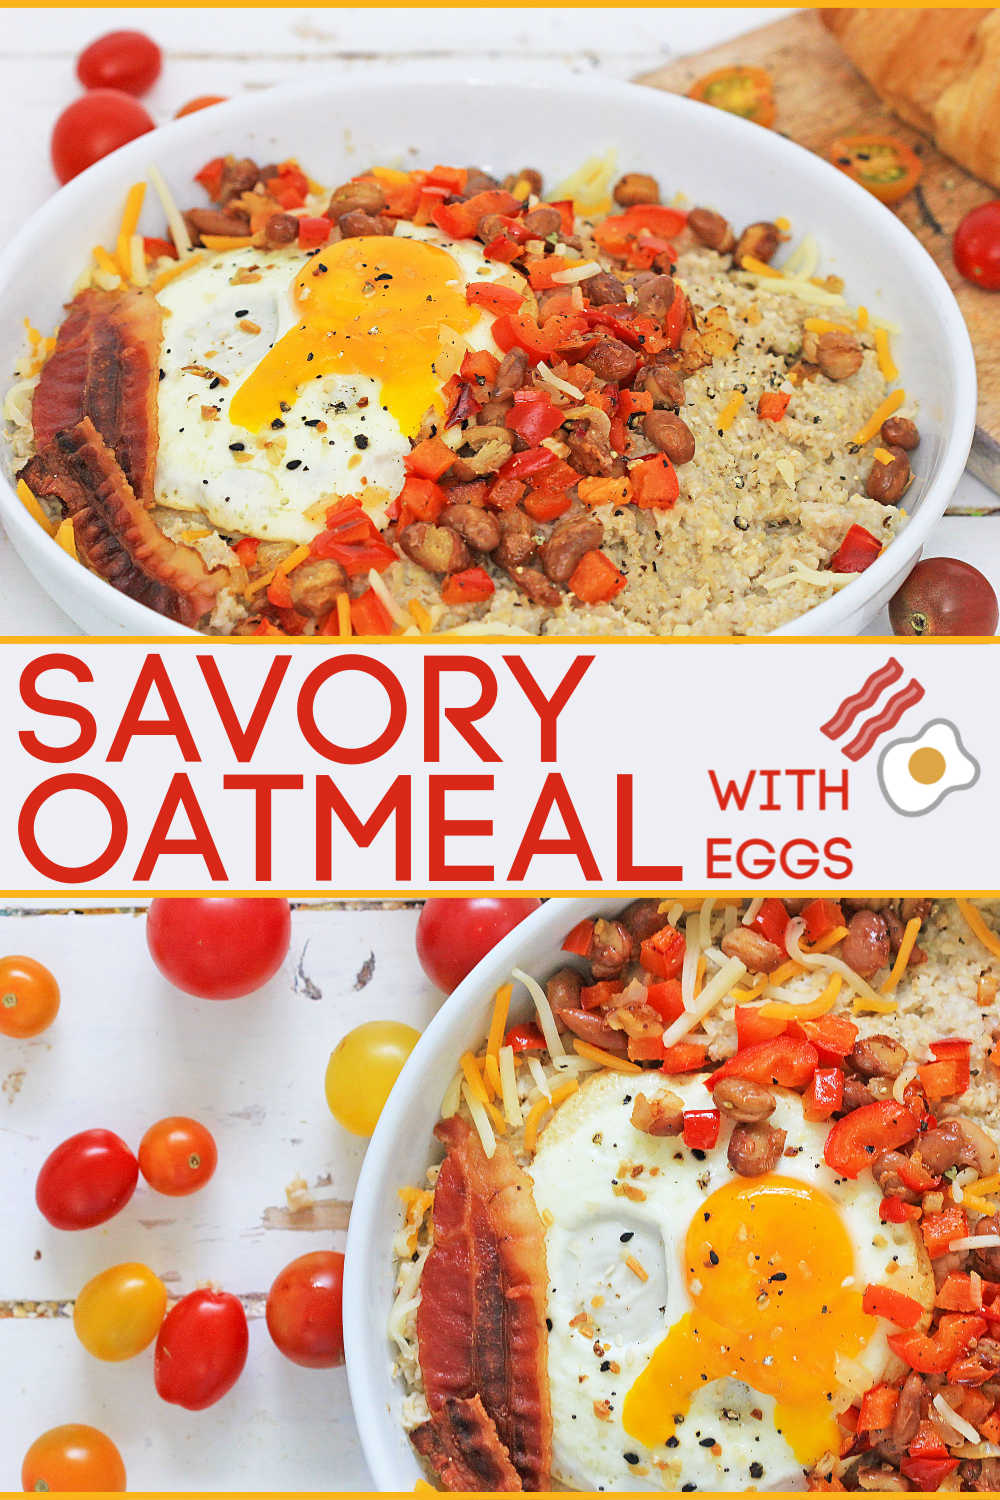 Delicious and EASY savory oatmeal with egg. This isn't just for breakfast. Adding peppers, beans, cheese and a sunny side up egg will have you craving this for make ahead dinners on those nights you just don't feel like preparing a fancy meal. #savory #oatmeal #savoryoats #breakfast #makeahead